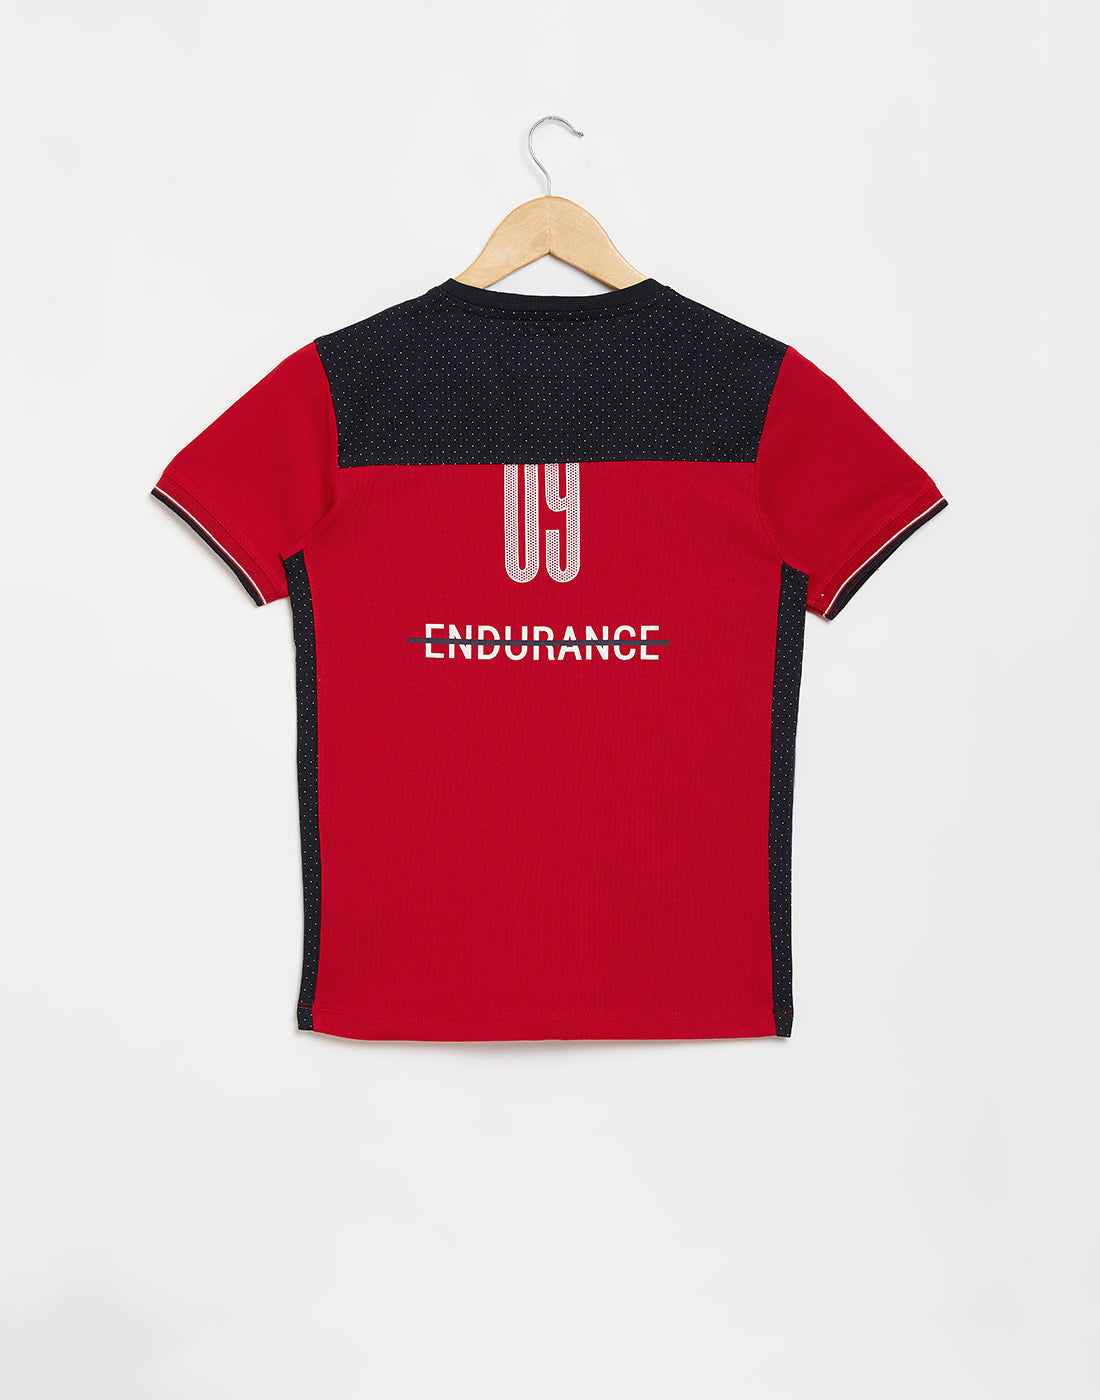 Octave Boys Brick Red Printed Tshirt